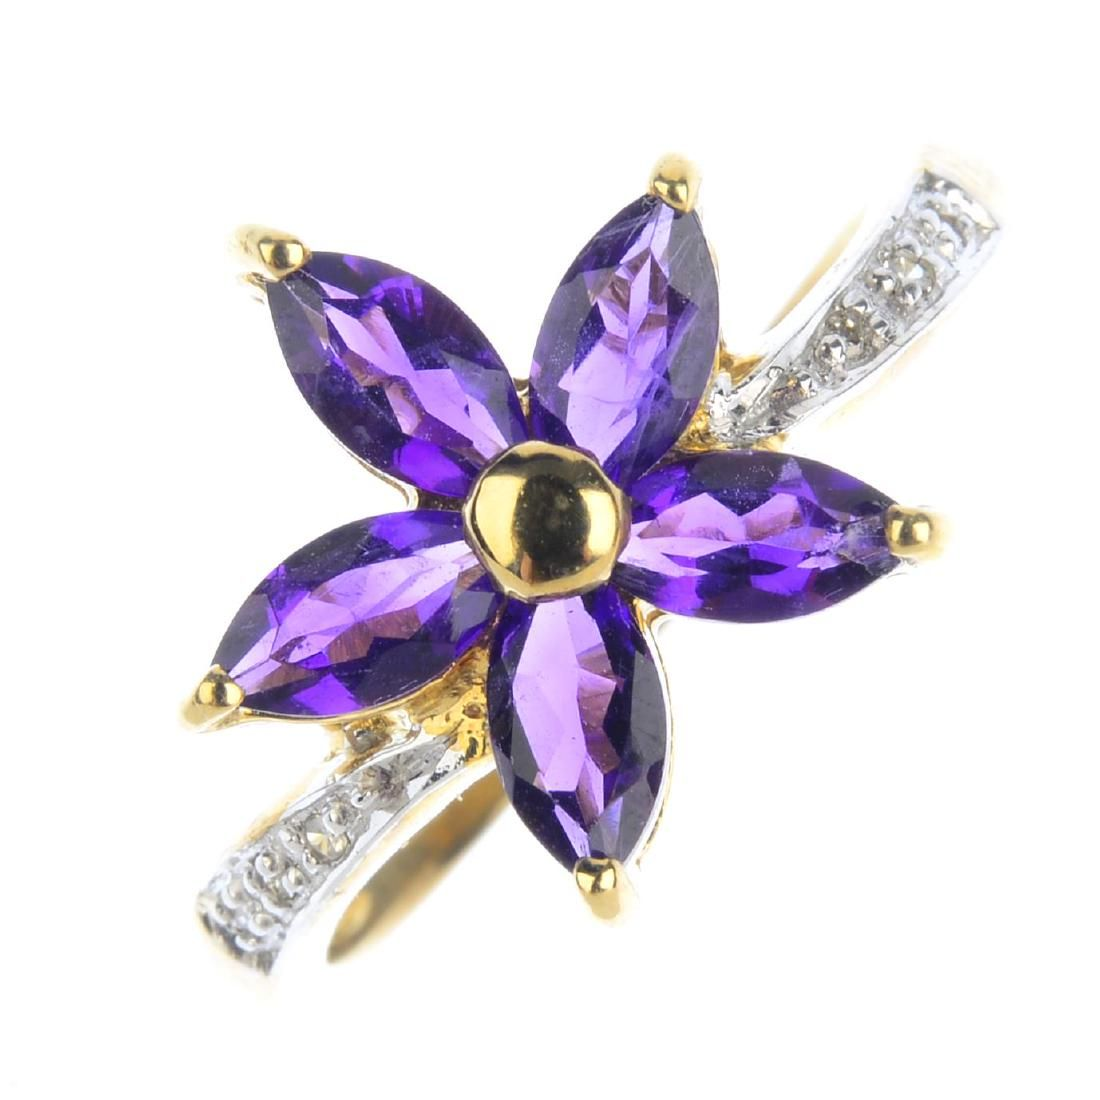 A 9ct gold amethyst and diamond ring. The